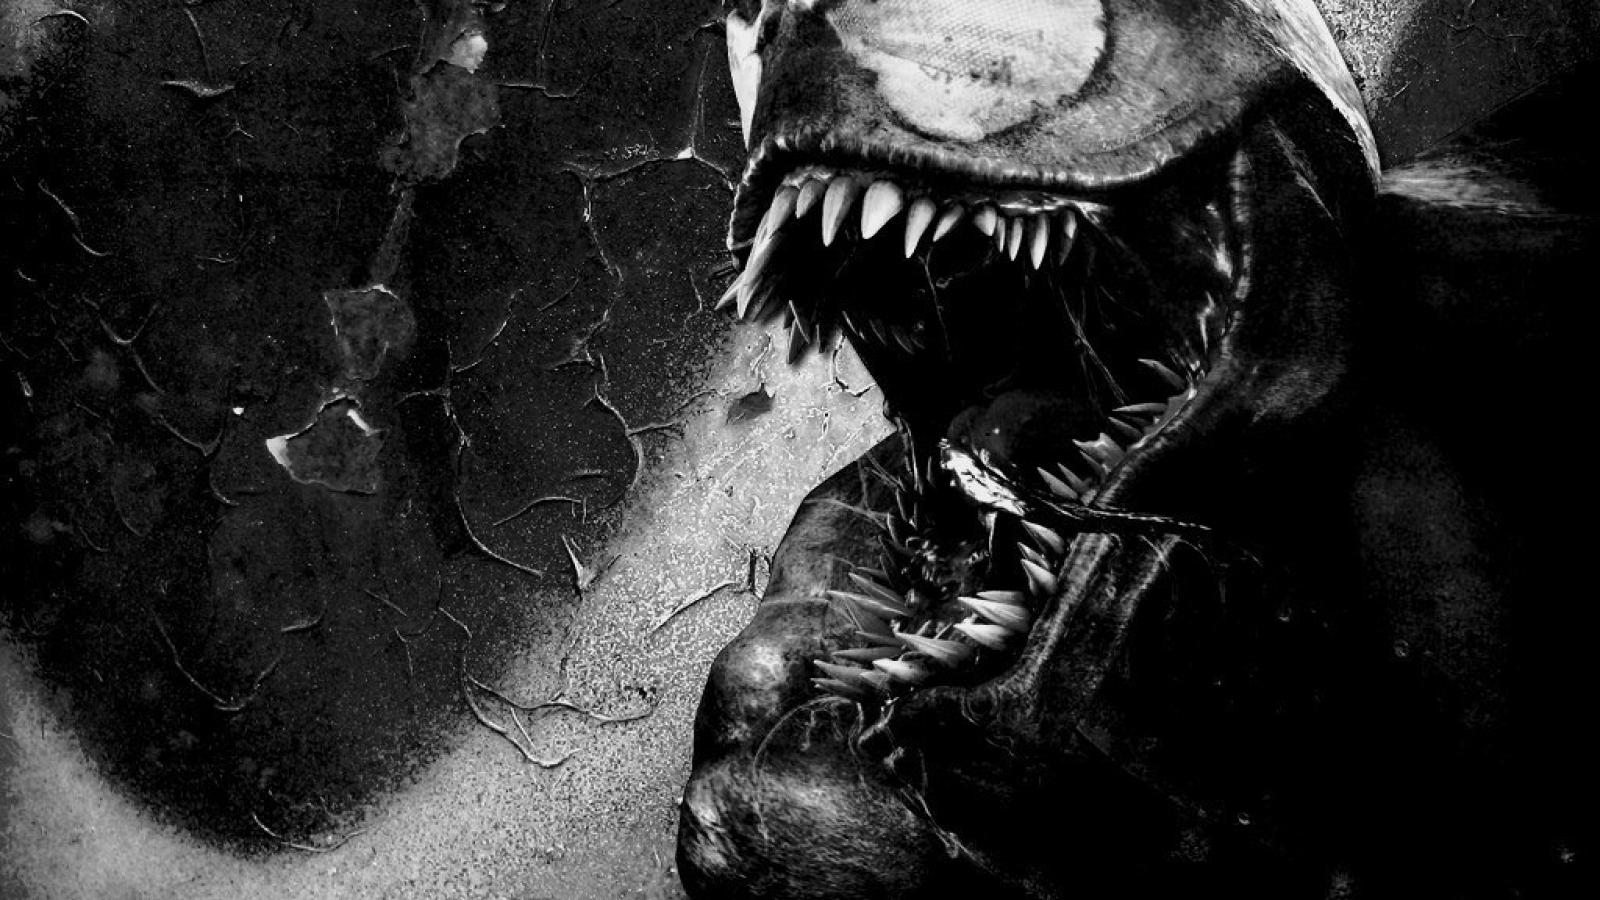 venom cool monochrome video games HD Wallpaper wallpaper   19   HQ 1600x900